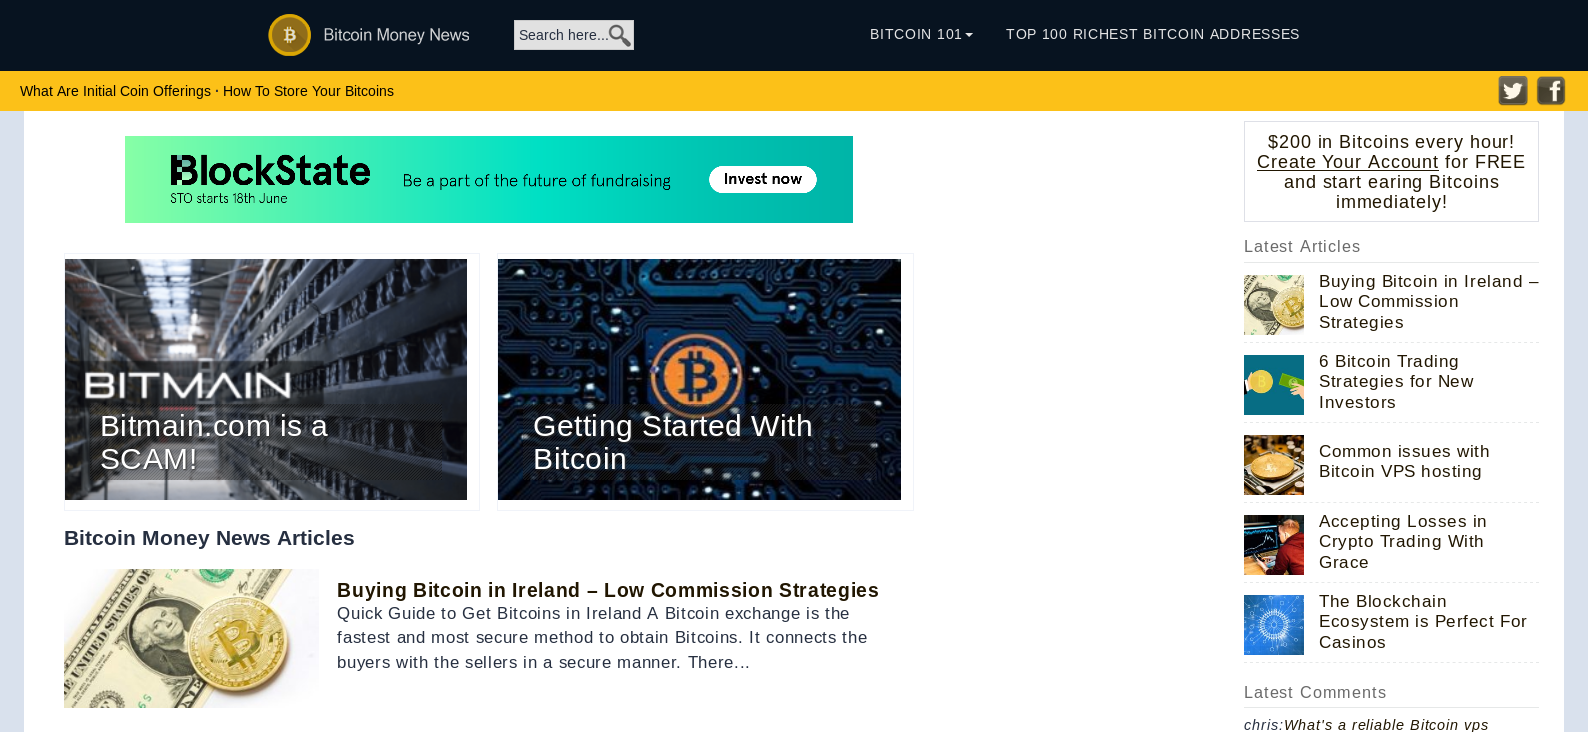 Guest Post on Bitcoin Money News - Da 26